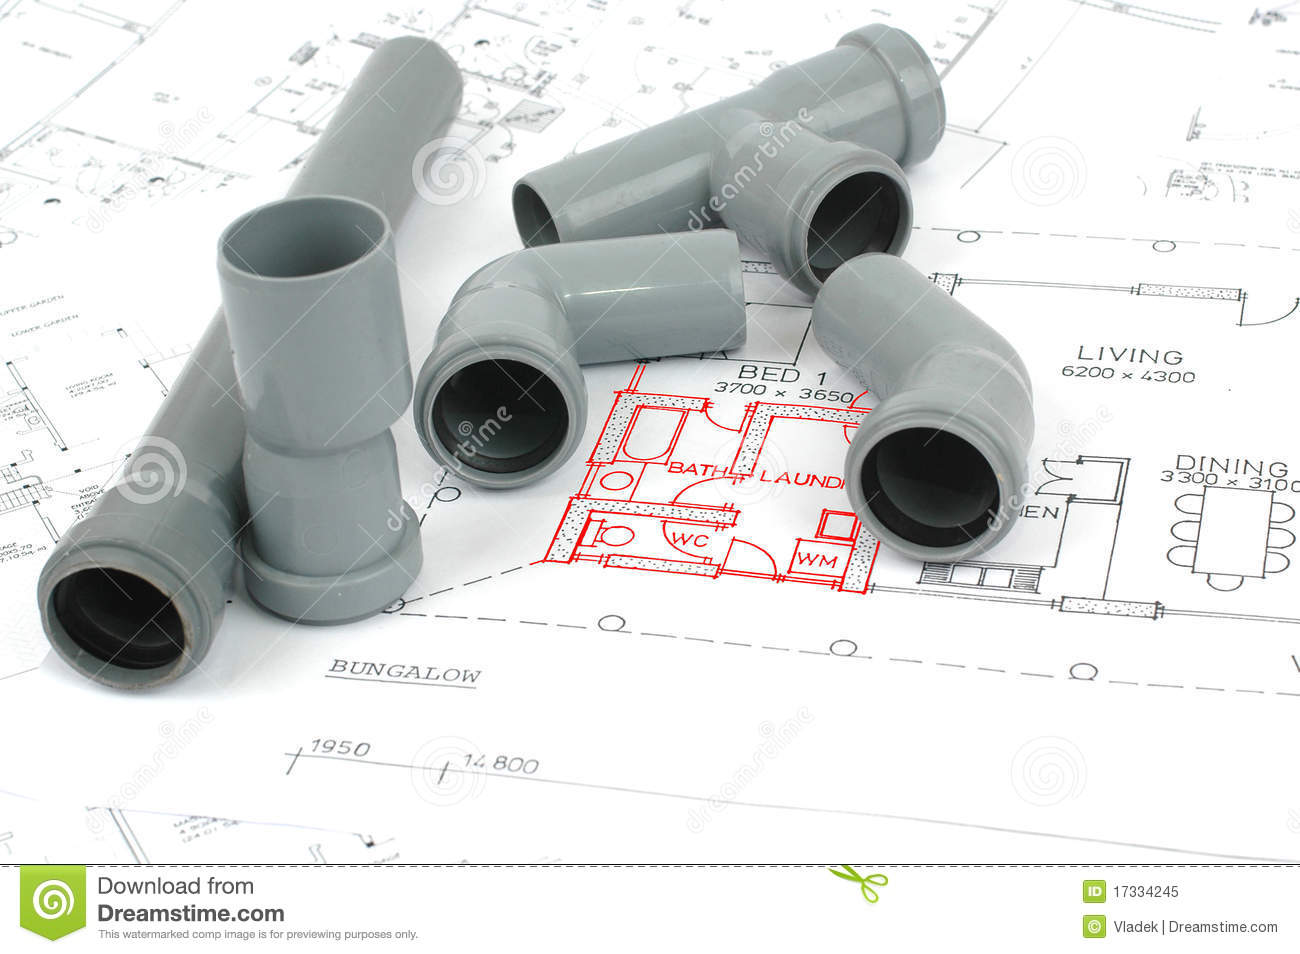 PVC Fittings For Drainage And Plumbing Plans Royalty Free